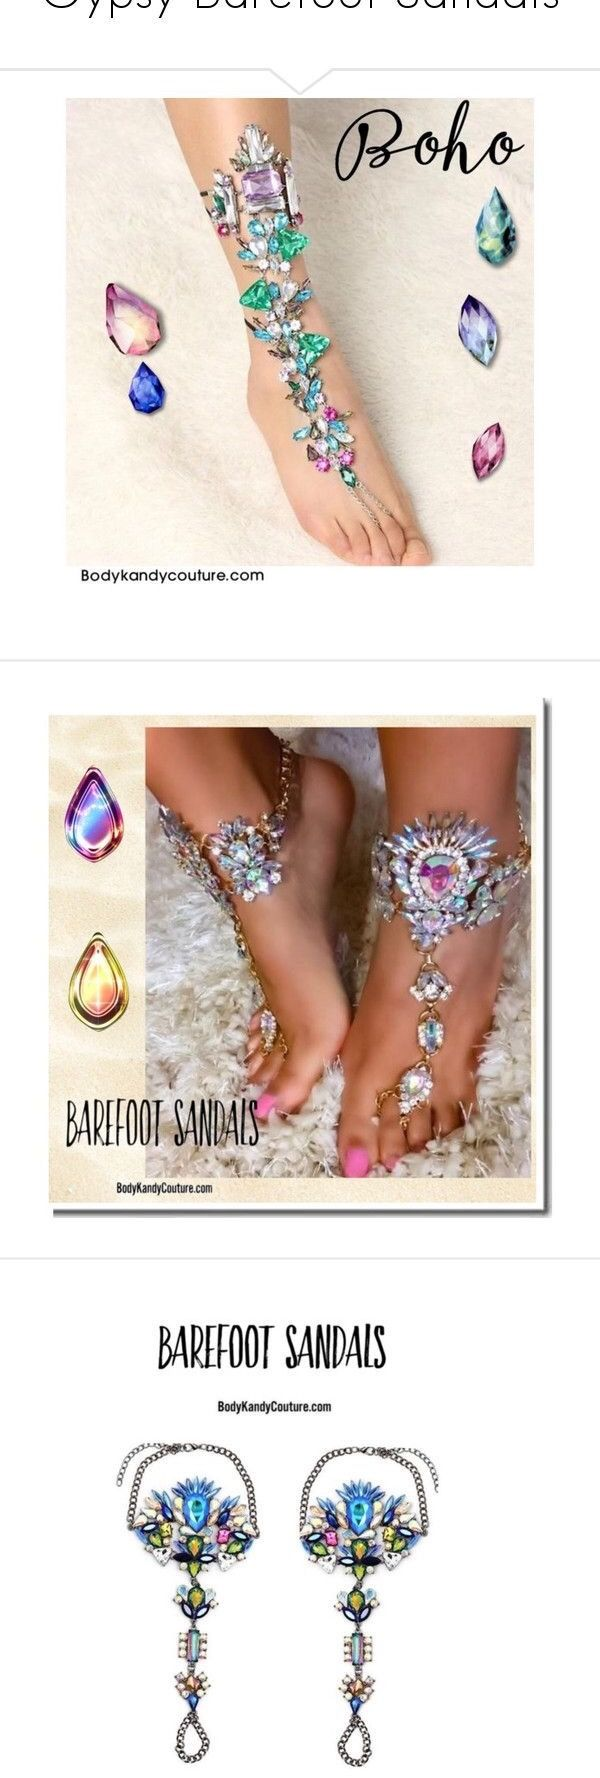 Gypsy Barefoot Sandals by bodykandycouture. Parisa Barefoot Sandals Weddings Beach Boho Foot Jewelry Gold Ankle Chains. Beach Wedding ideas #barefootsandals #beachweddings #beach #weddings #barefoot #sandals #Bohemian #foot #jewelry women's fashion, shoes, sandals, bohemian shoes, bohemian style shoes, beach sandals, boho